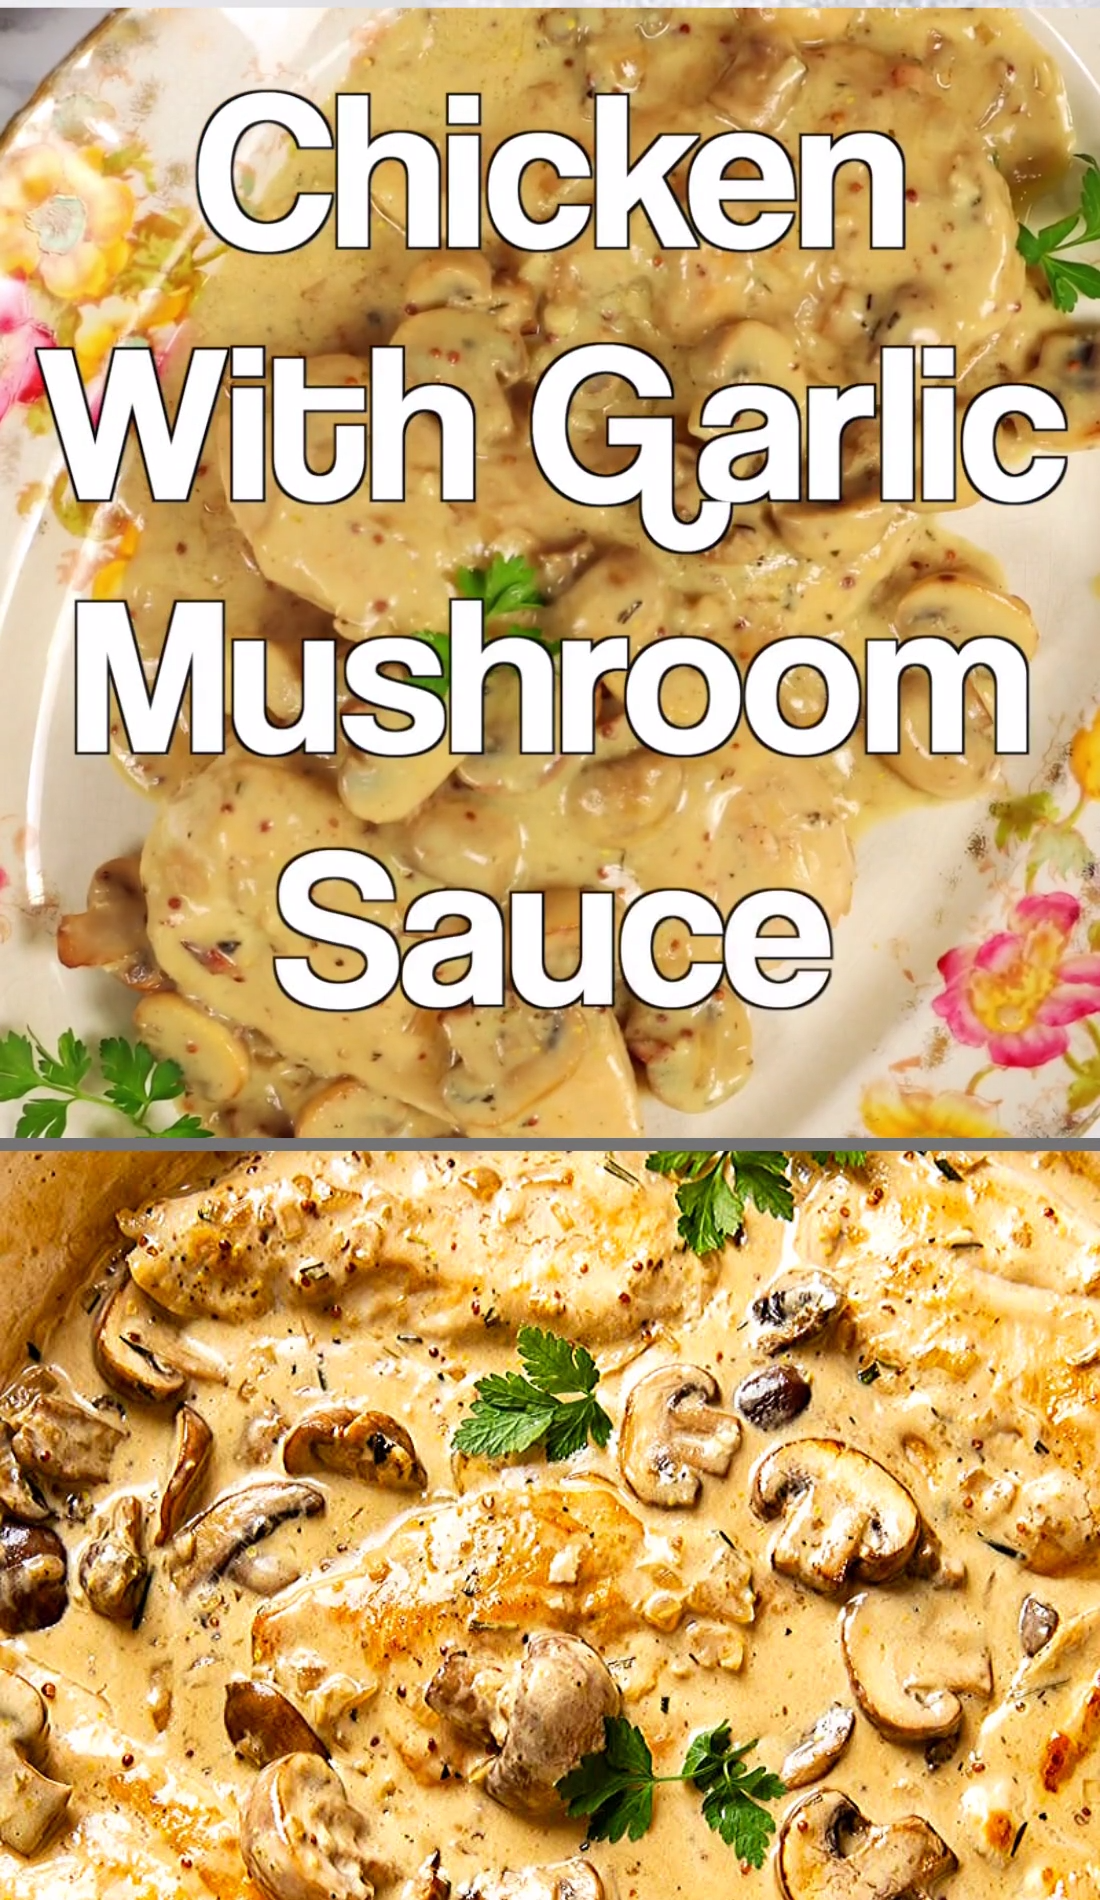 Photo of Chicken with Garlic Mushroom Sauce